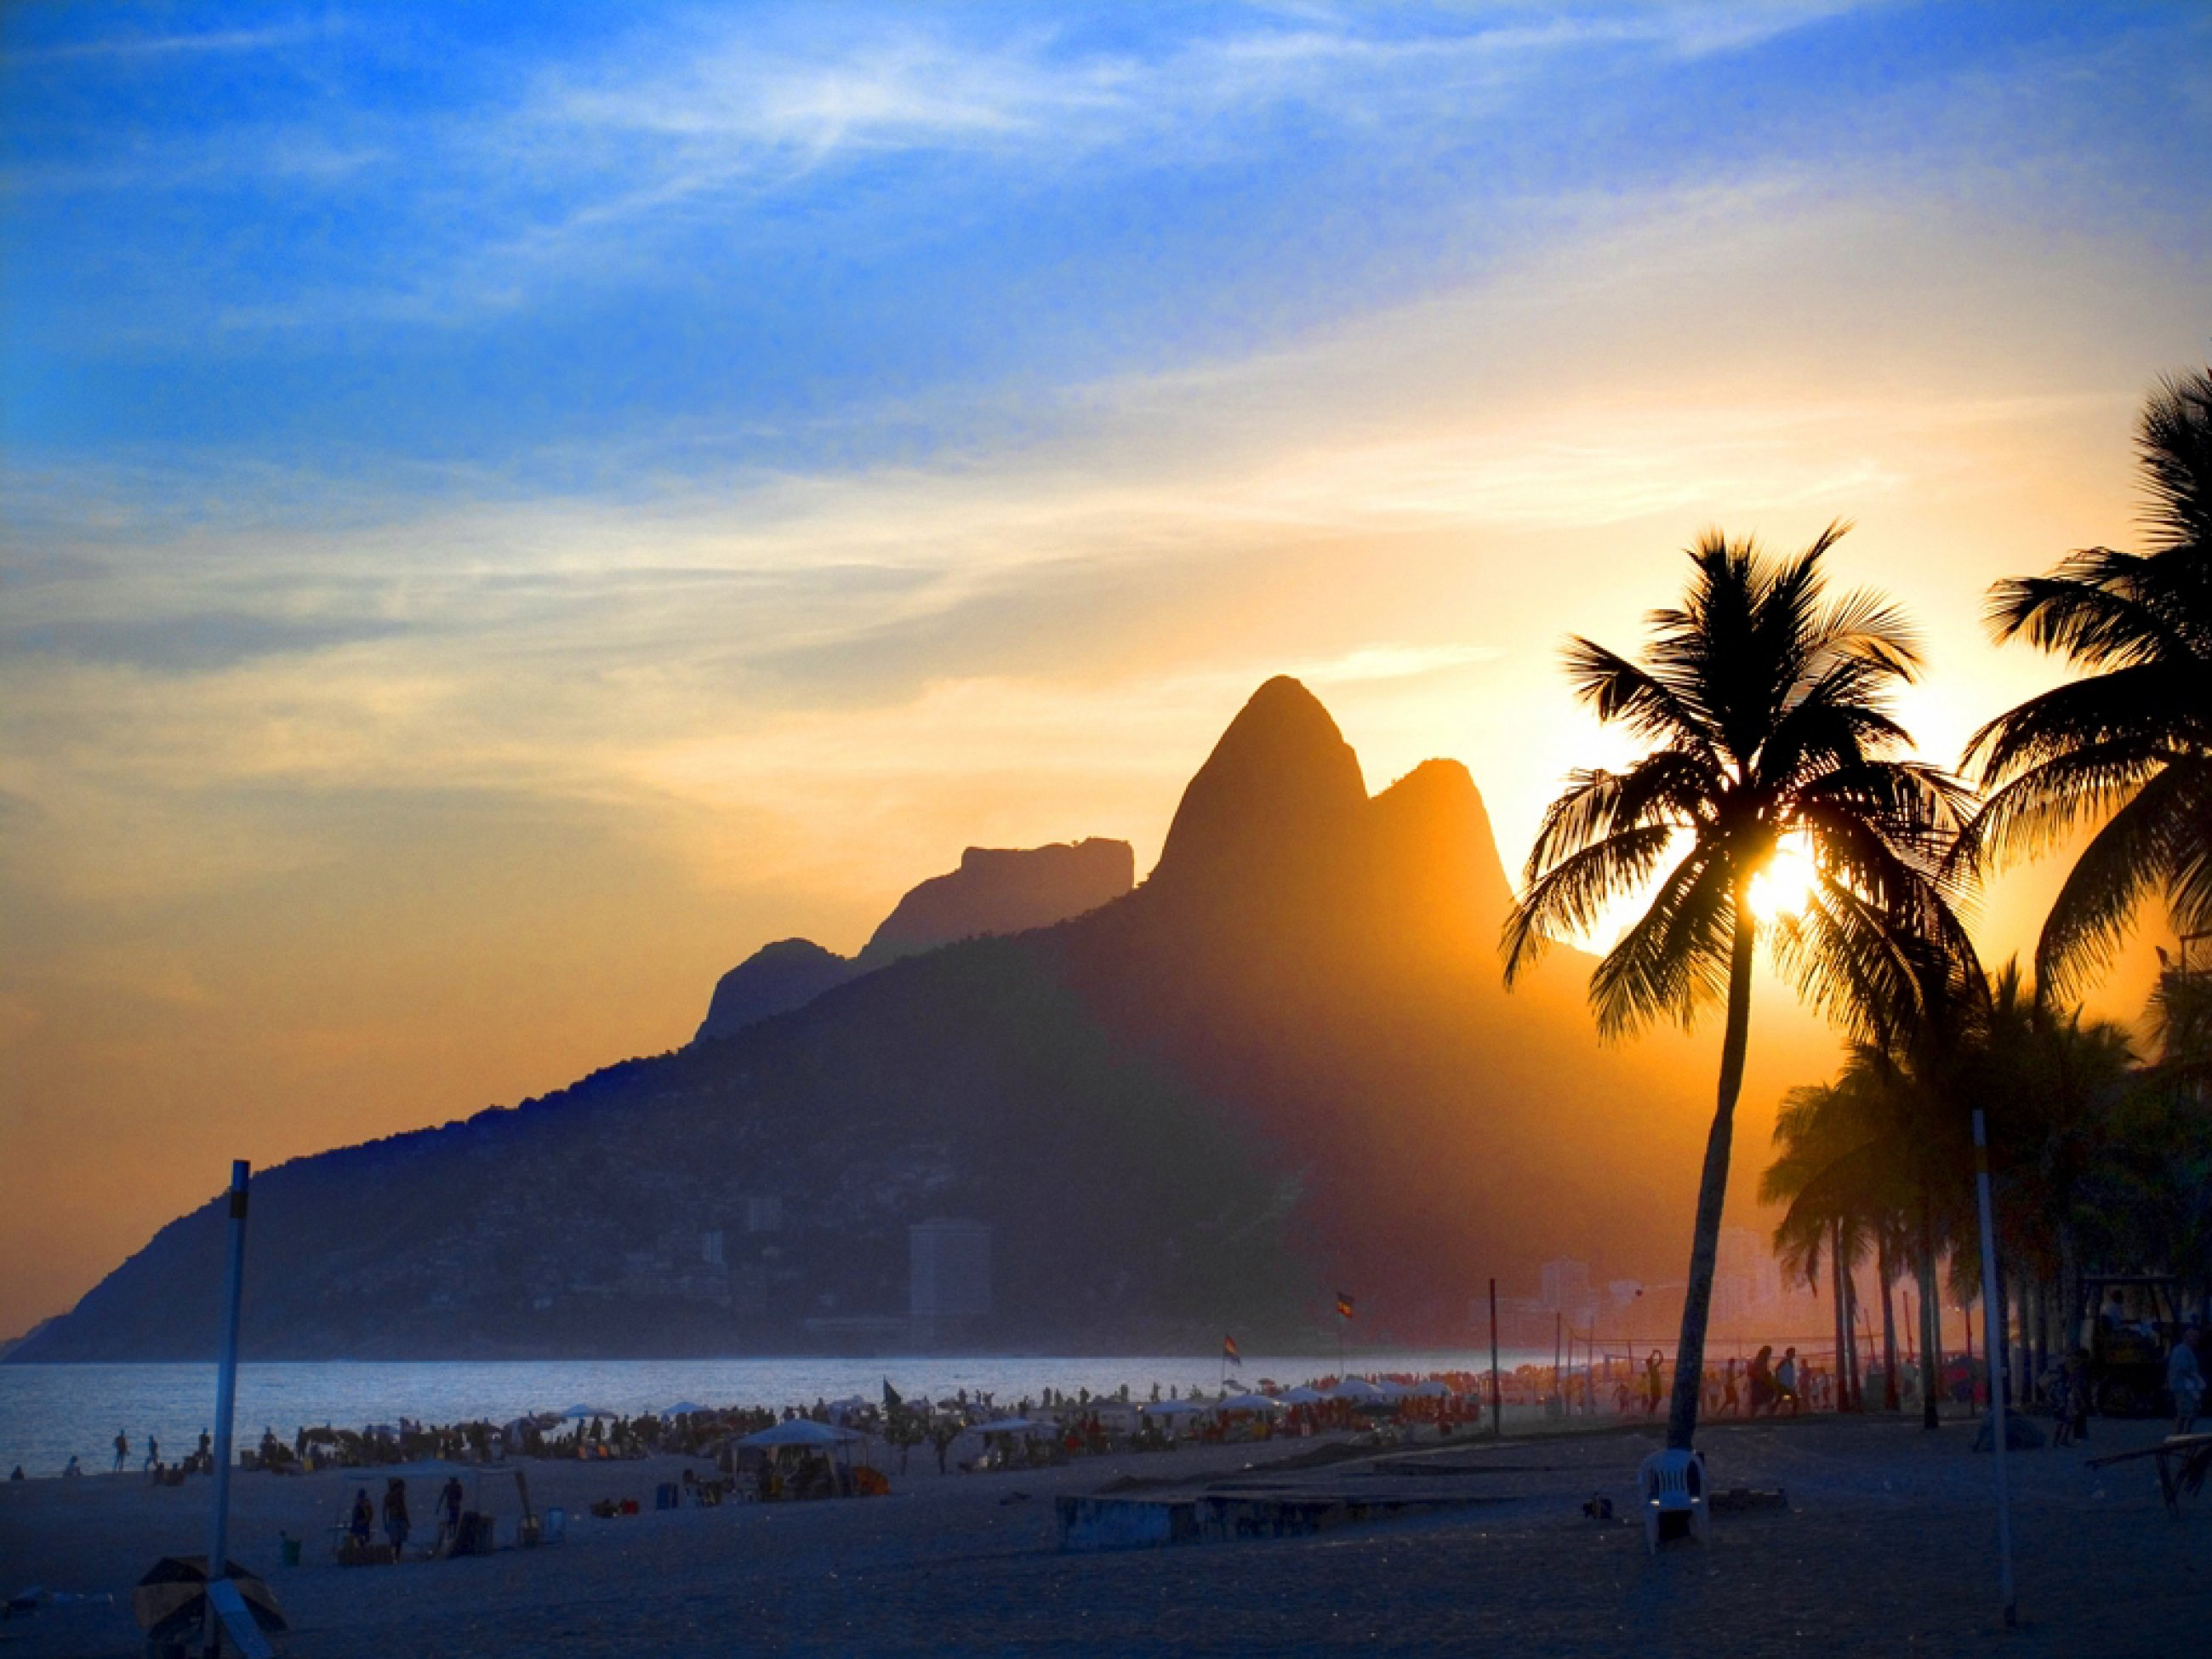 https://bubo.sk/uploads/galleries/7412/sunset-in-ipanema.jpg